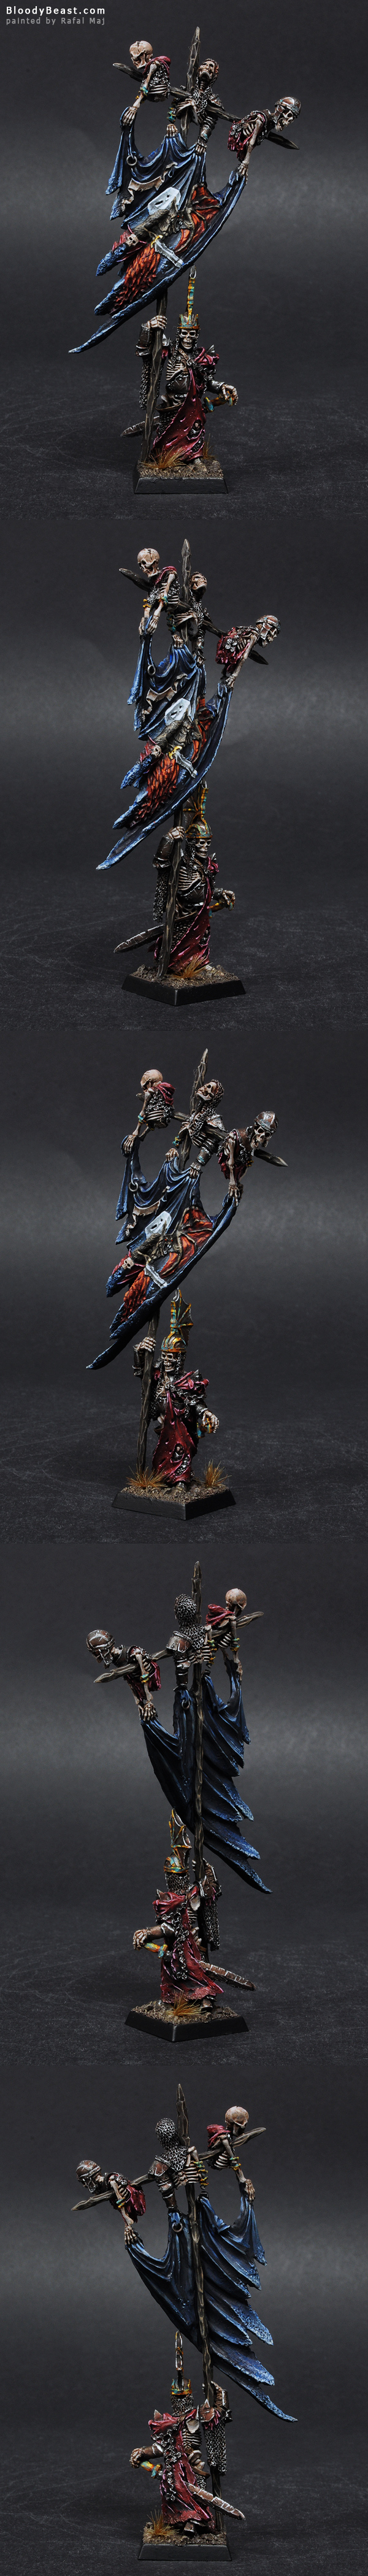 Forge World Wight King Battle Standard Bearer painted by Rafal Maj (BloodyBeast.com)